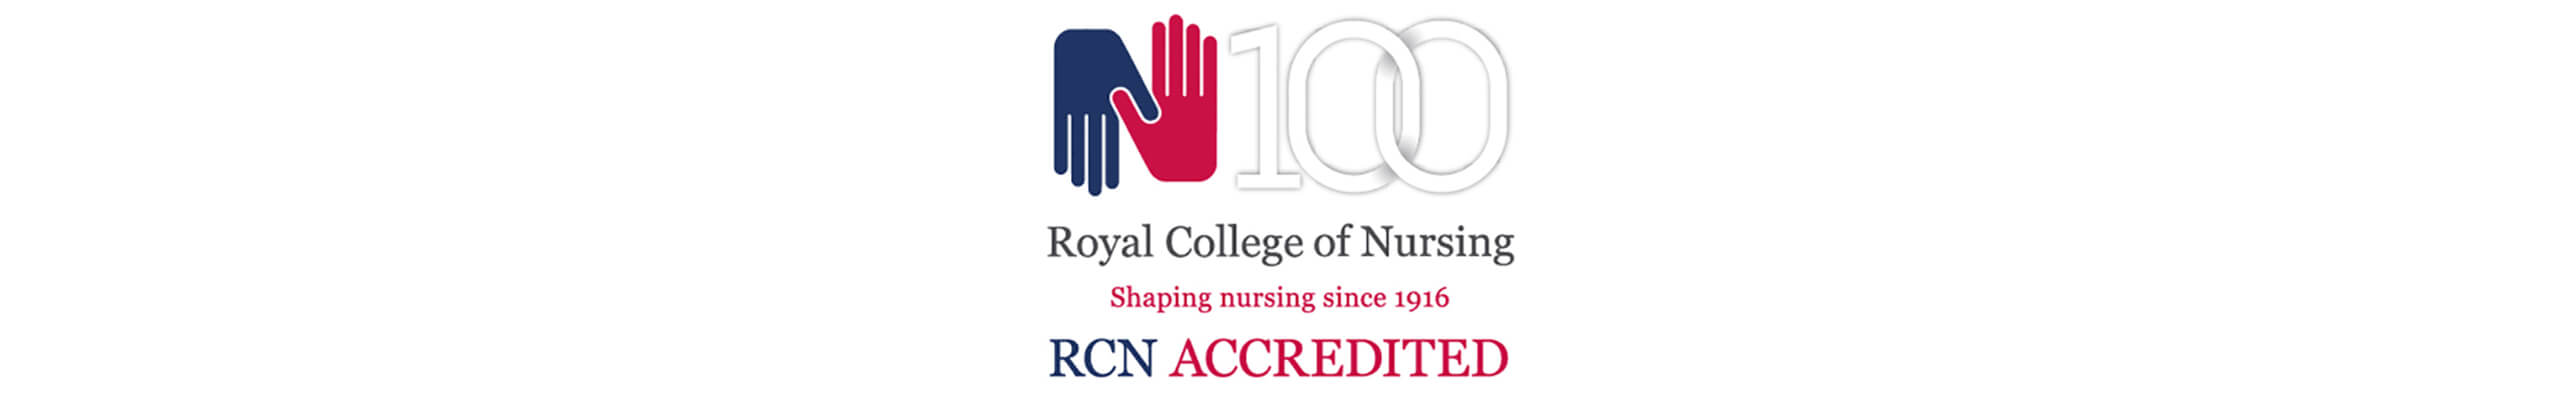 Royal College of Nursing (RCN) Centre for Professional Accreditation logo